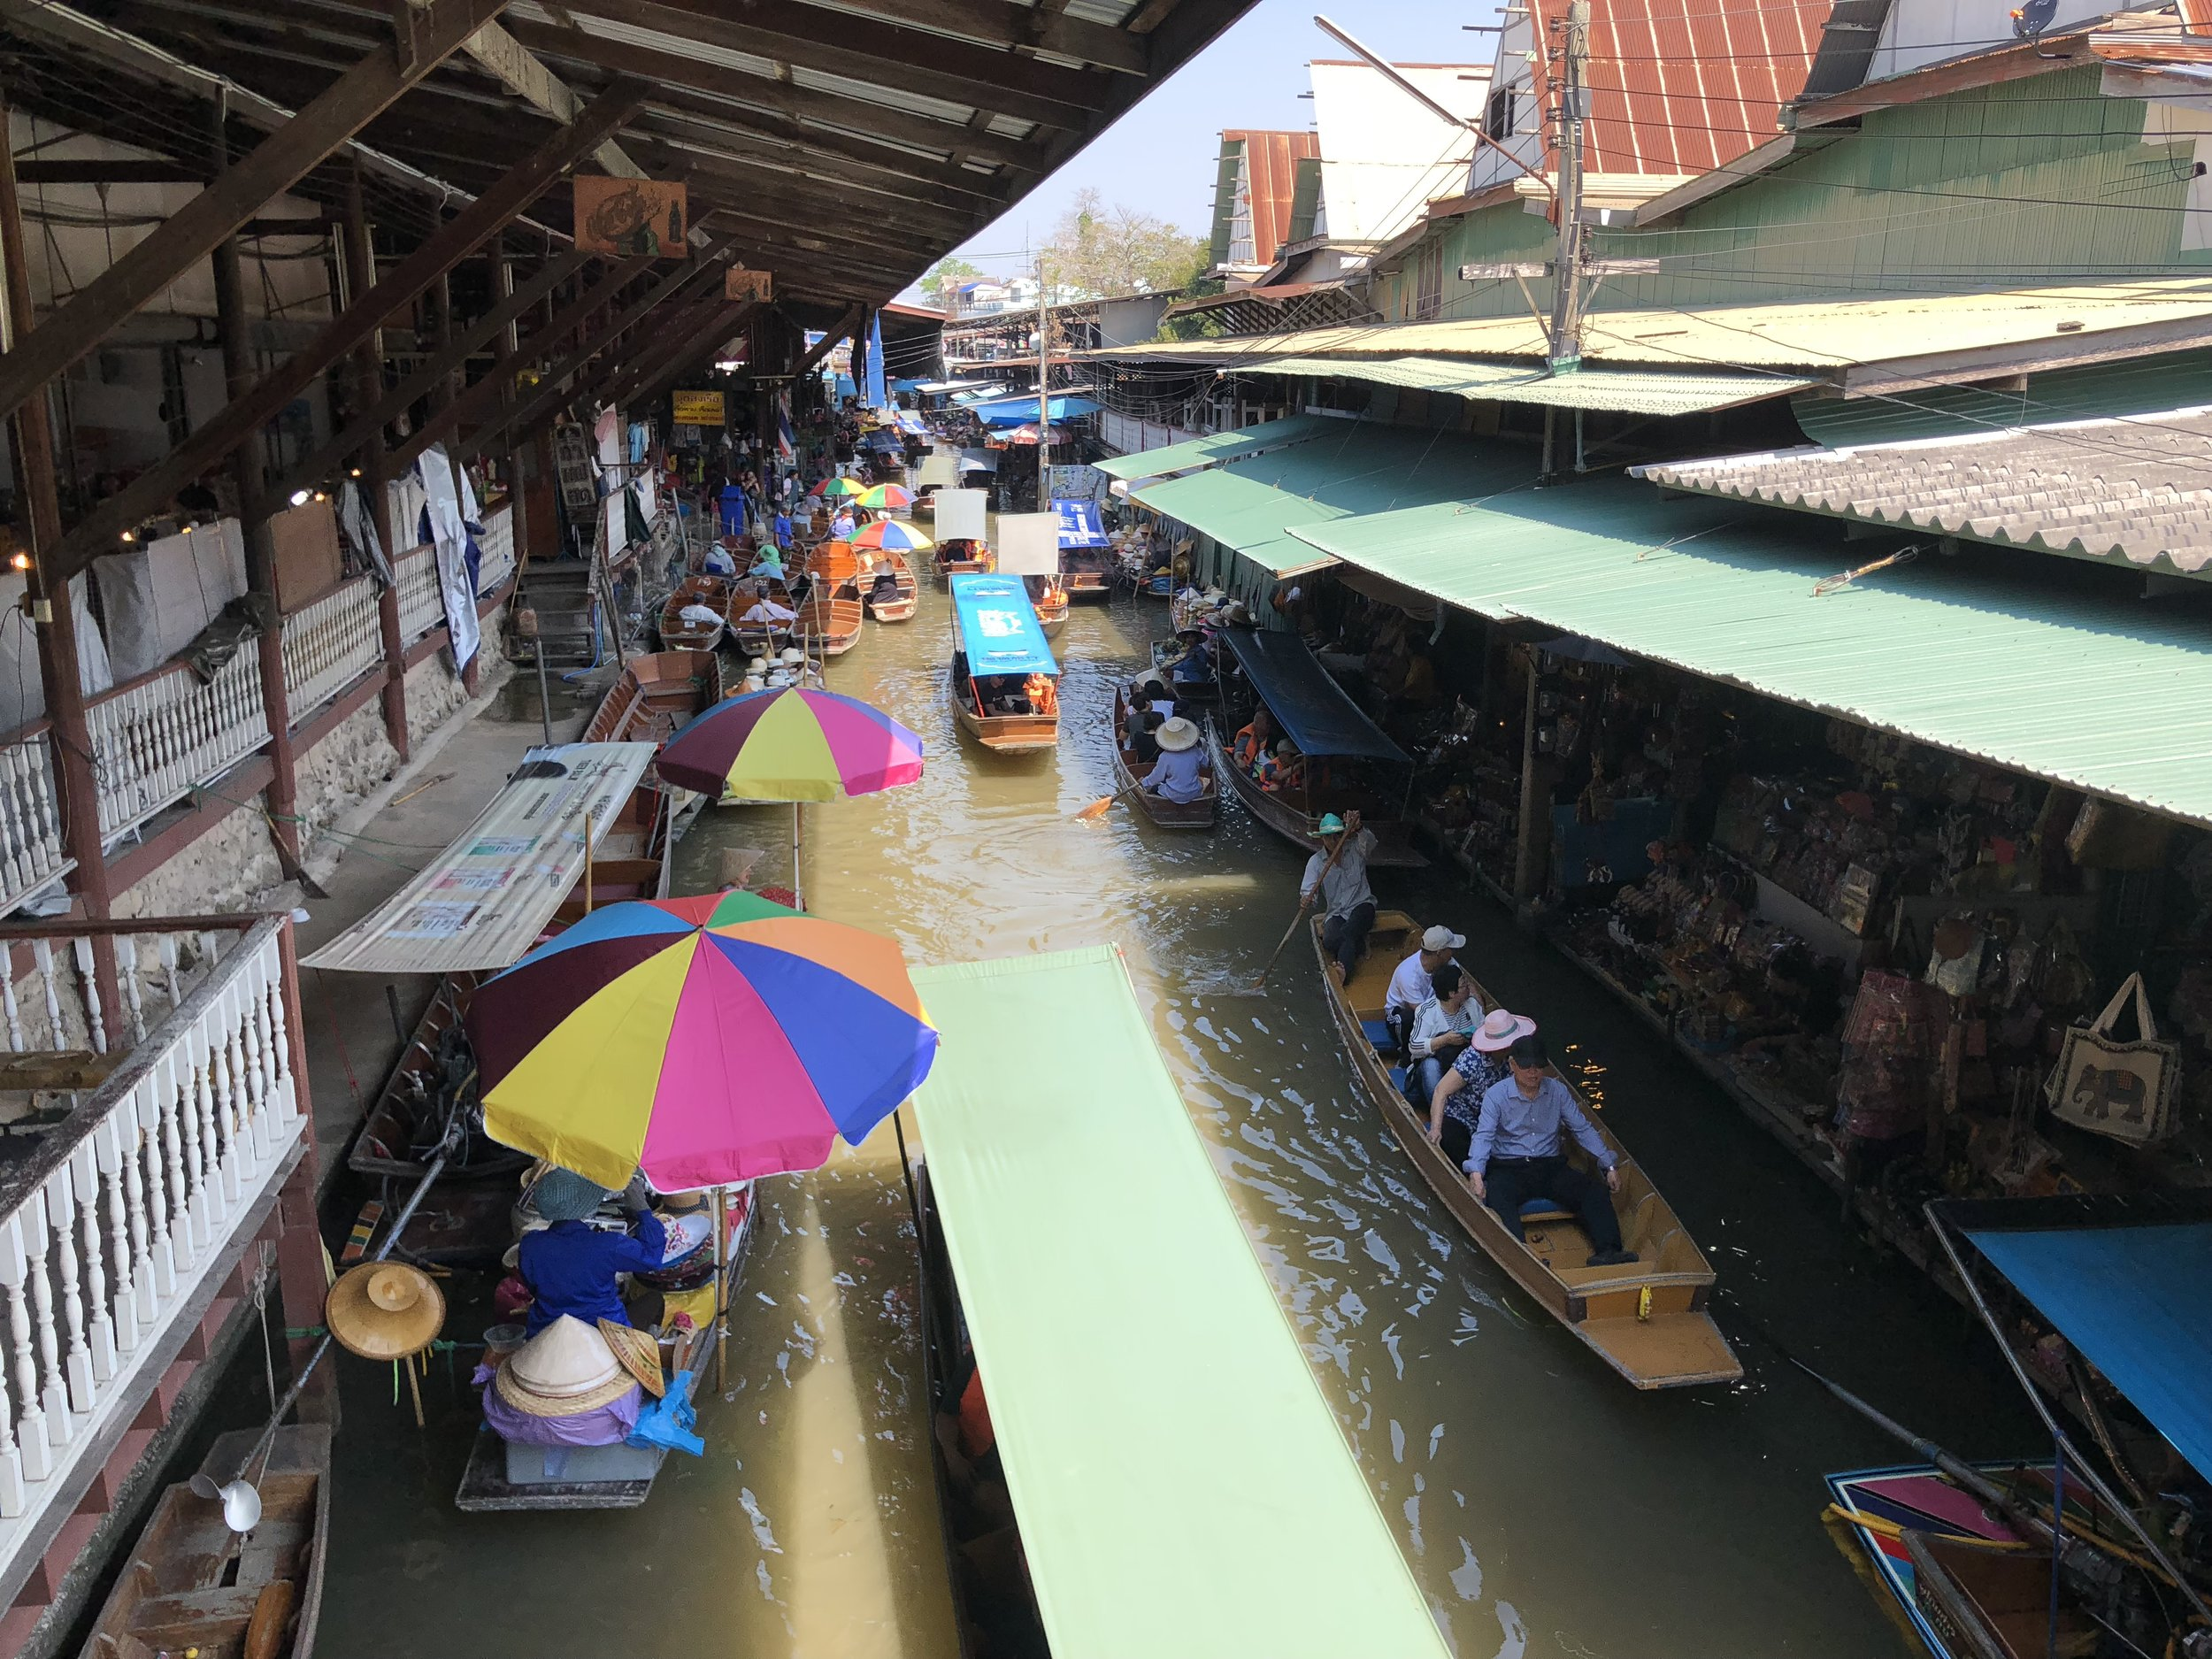 A look of the floating market from above. So lively and colorful!